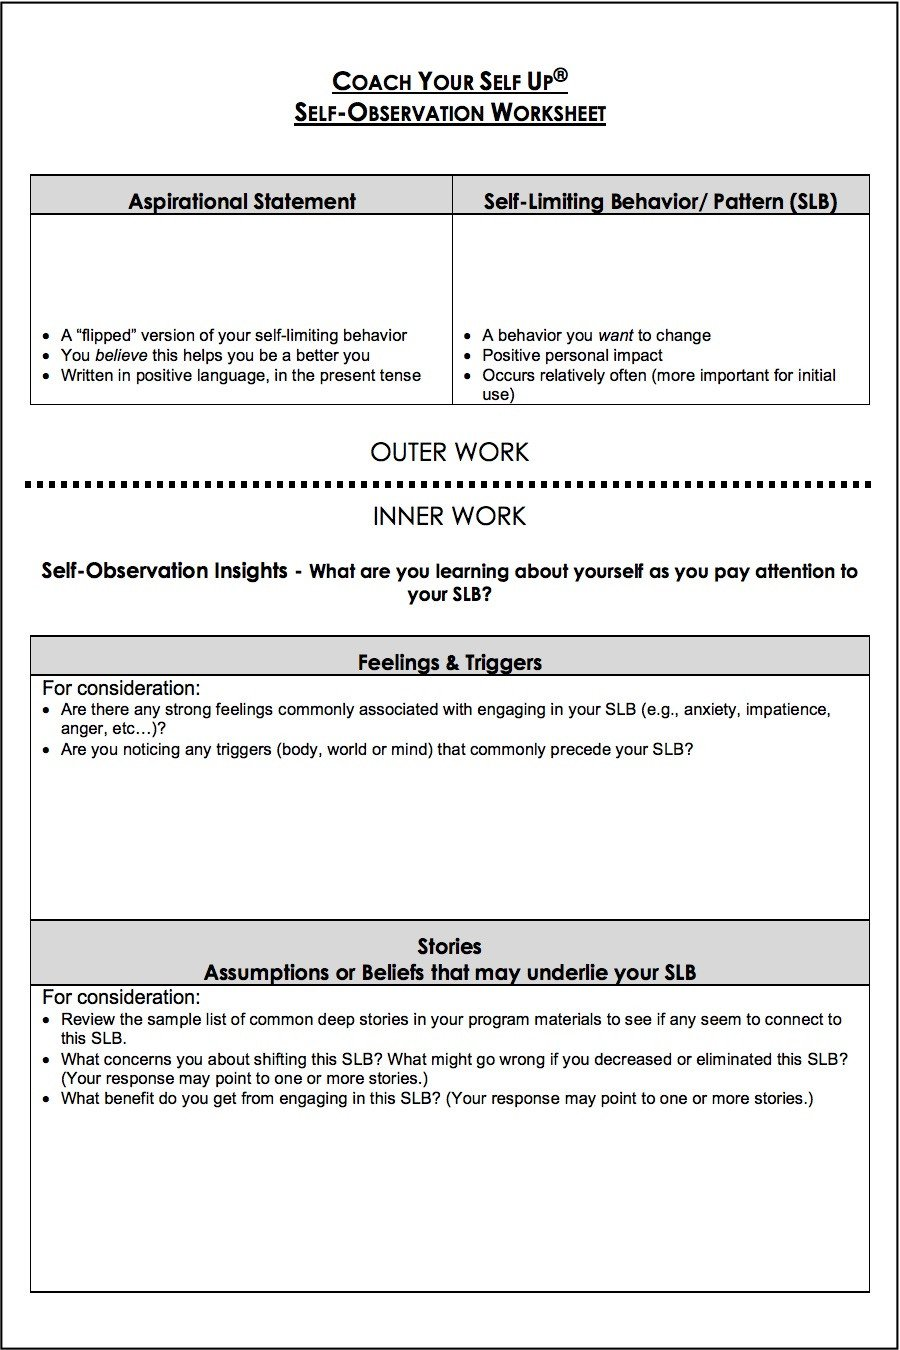 Personal Development Worksheets Self Observation Worksheet – A tool for Your Personal Growth